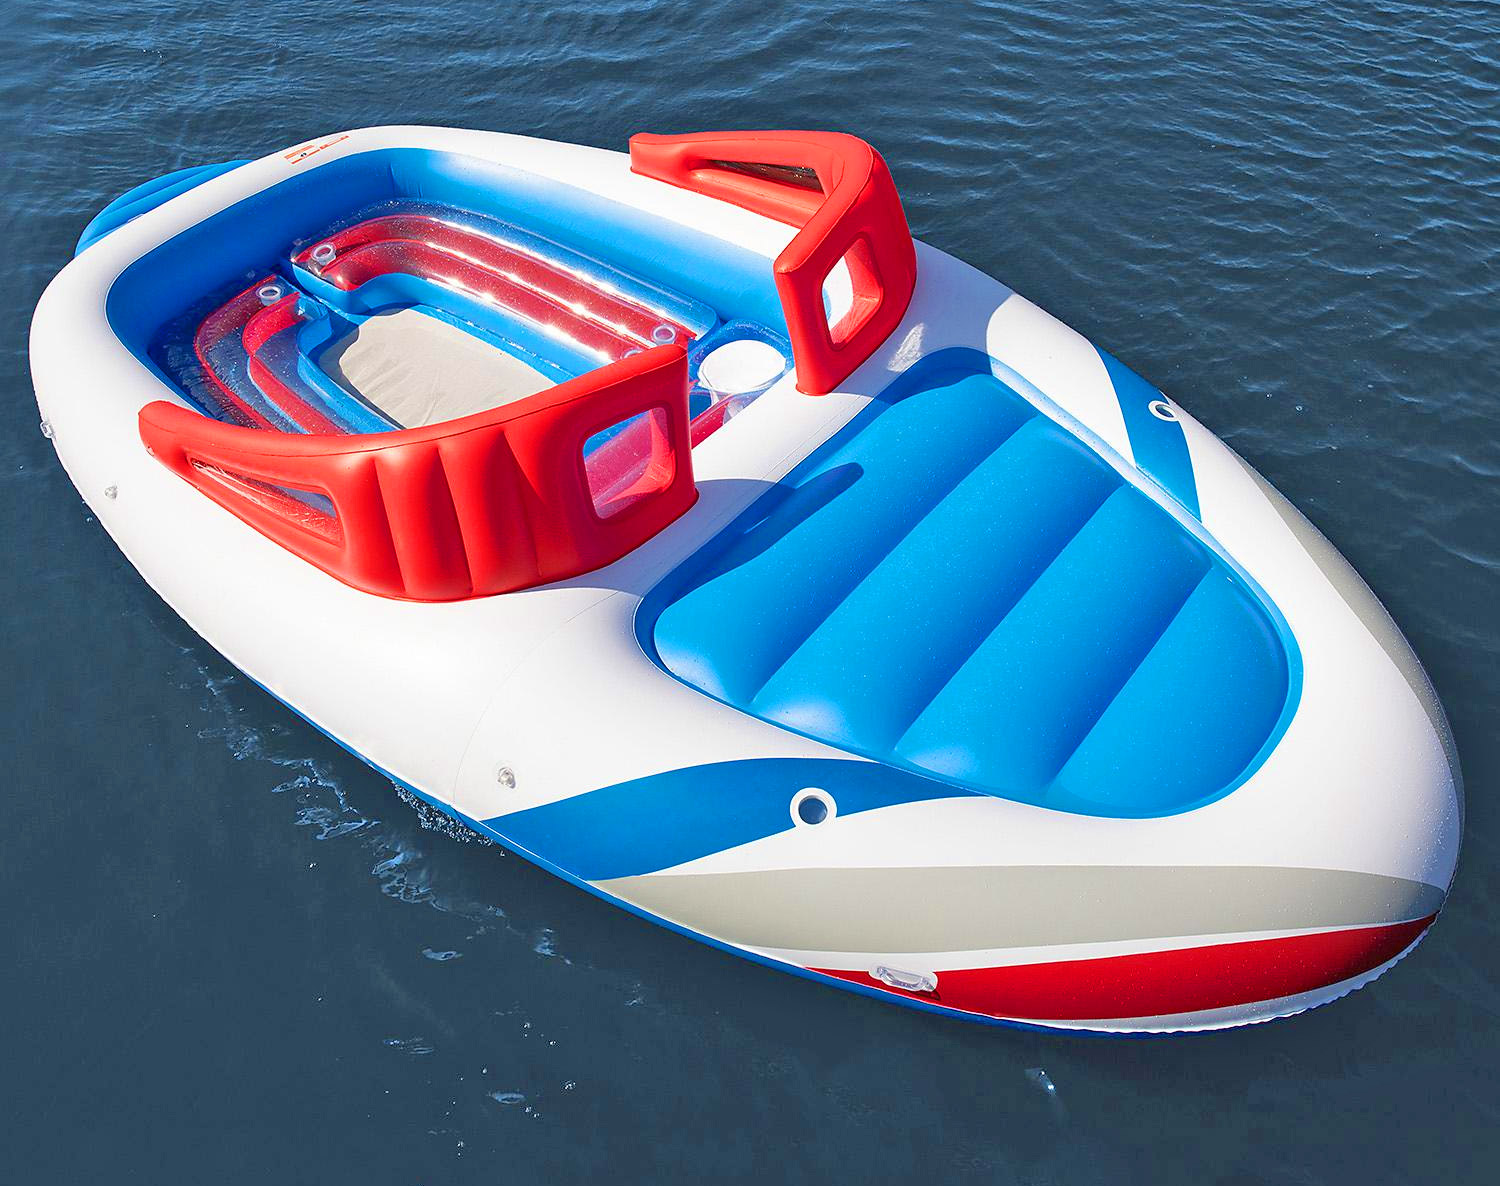 Giant 20-Foot Speed Boat Lake Float - Inflatable life-size Speed Boat lake float